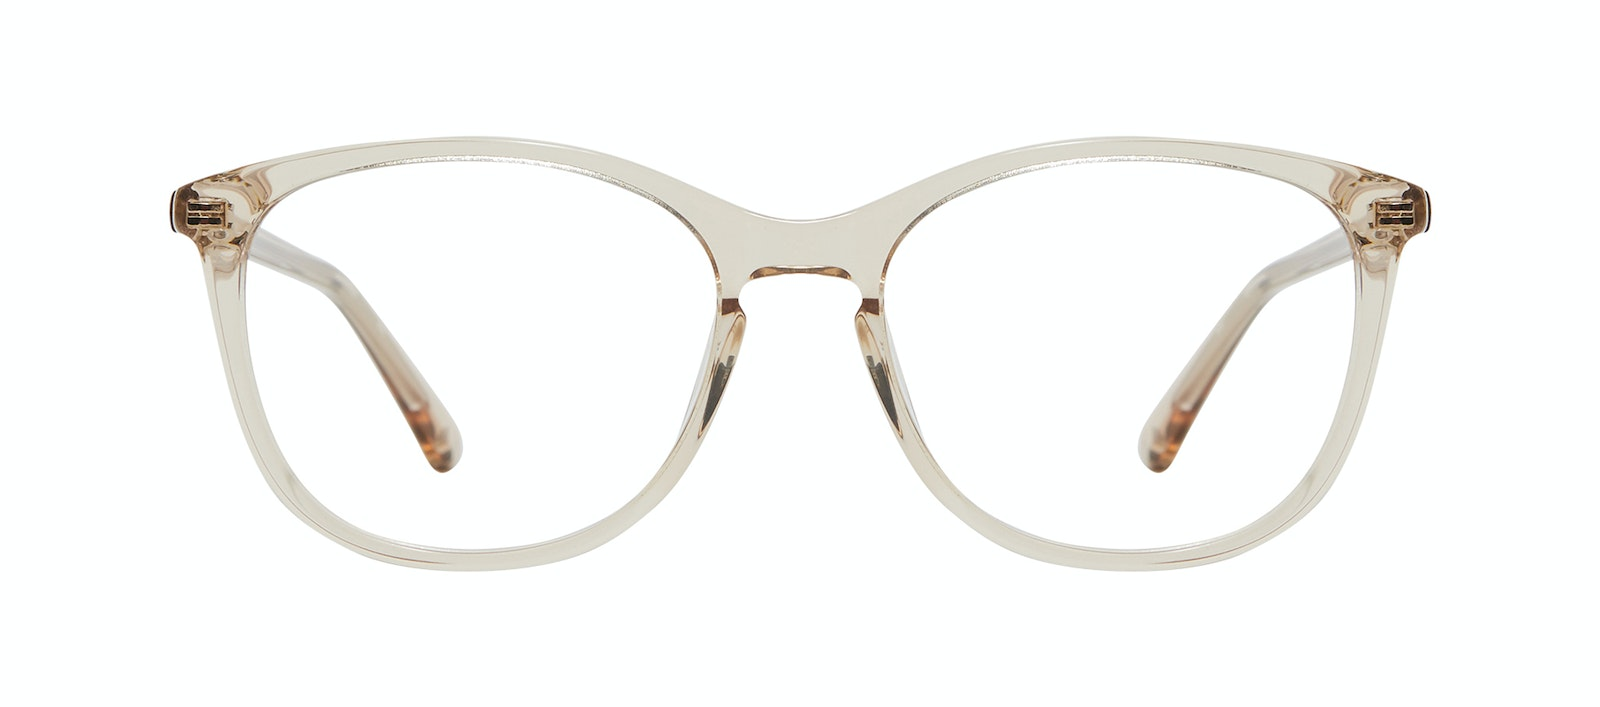 Affordable Fashion Glasses Rectangle Square Round Eyeglasses Women Nadine XL Prosecco Front